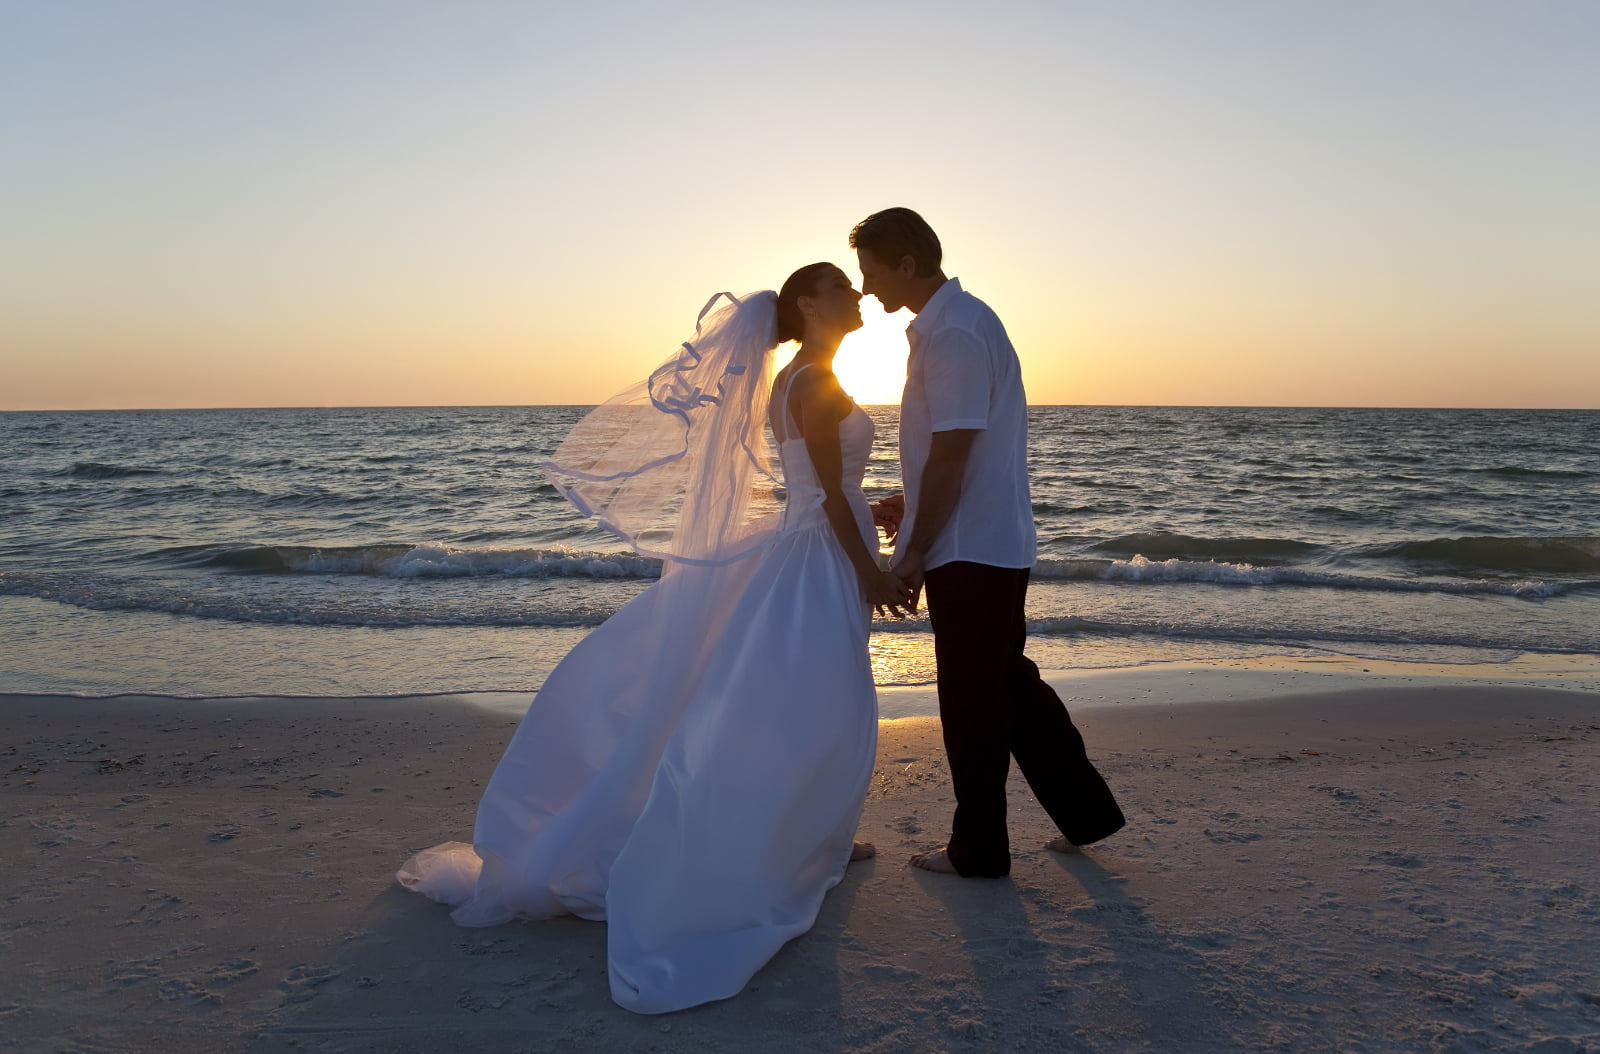 How to Make a Beach Wedding Affordable